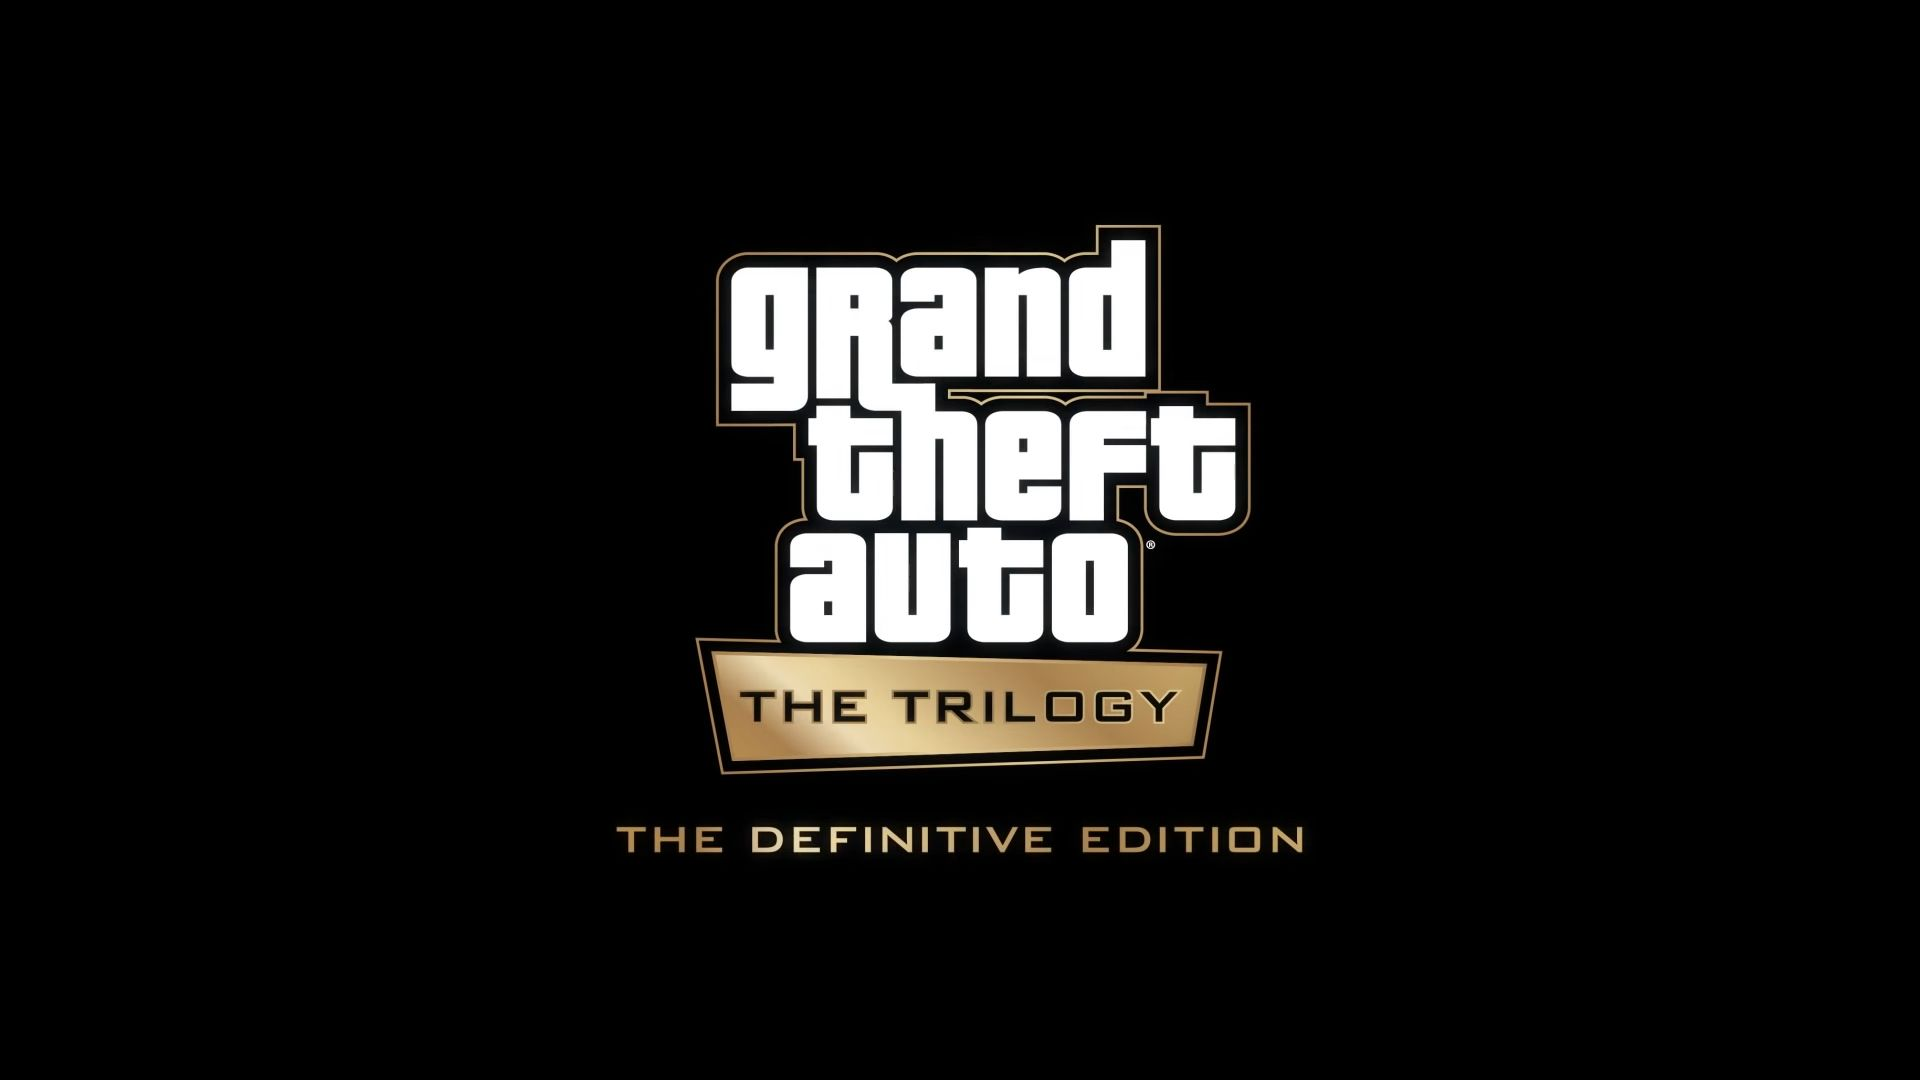 Grand Theft Auto: The Trilogy – The Definitive Edition